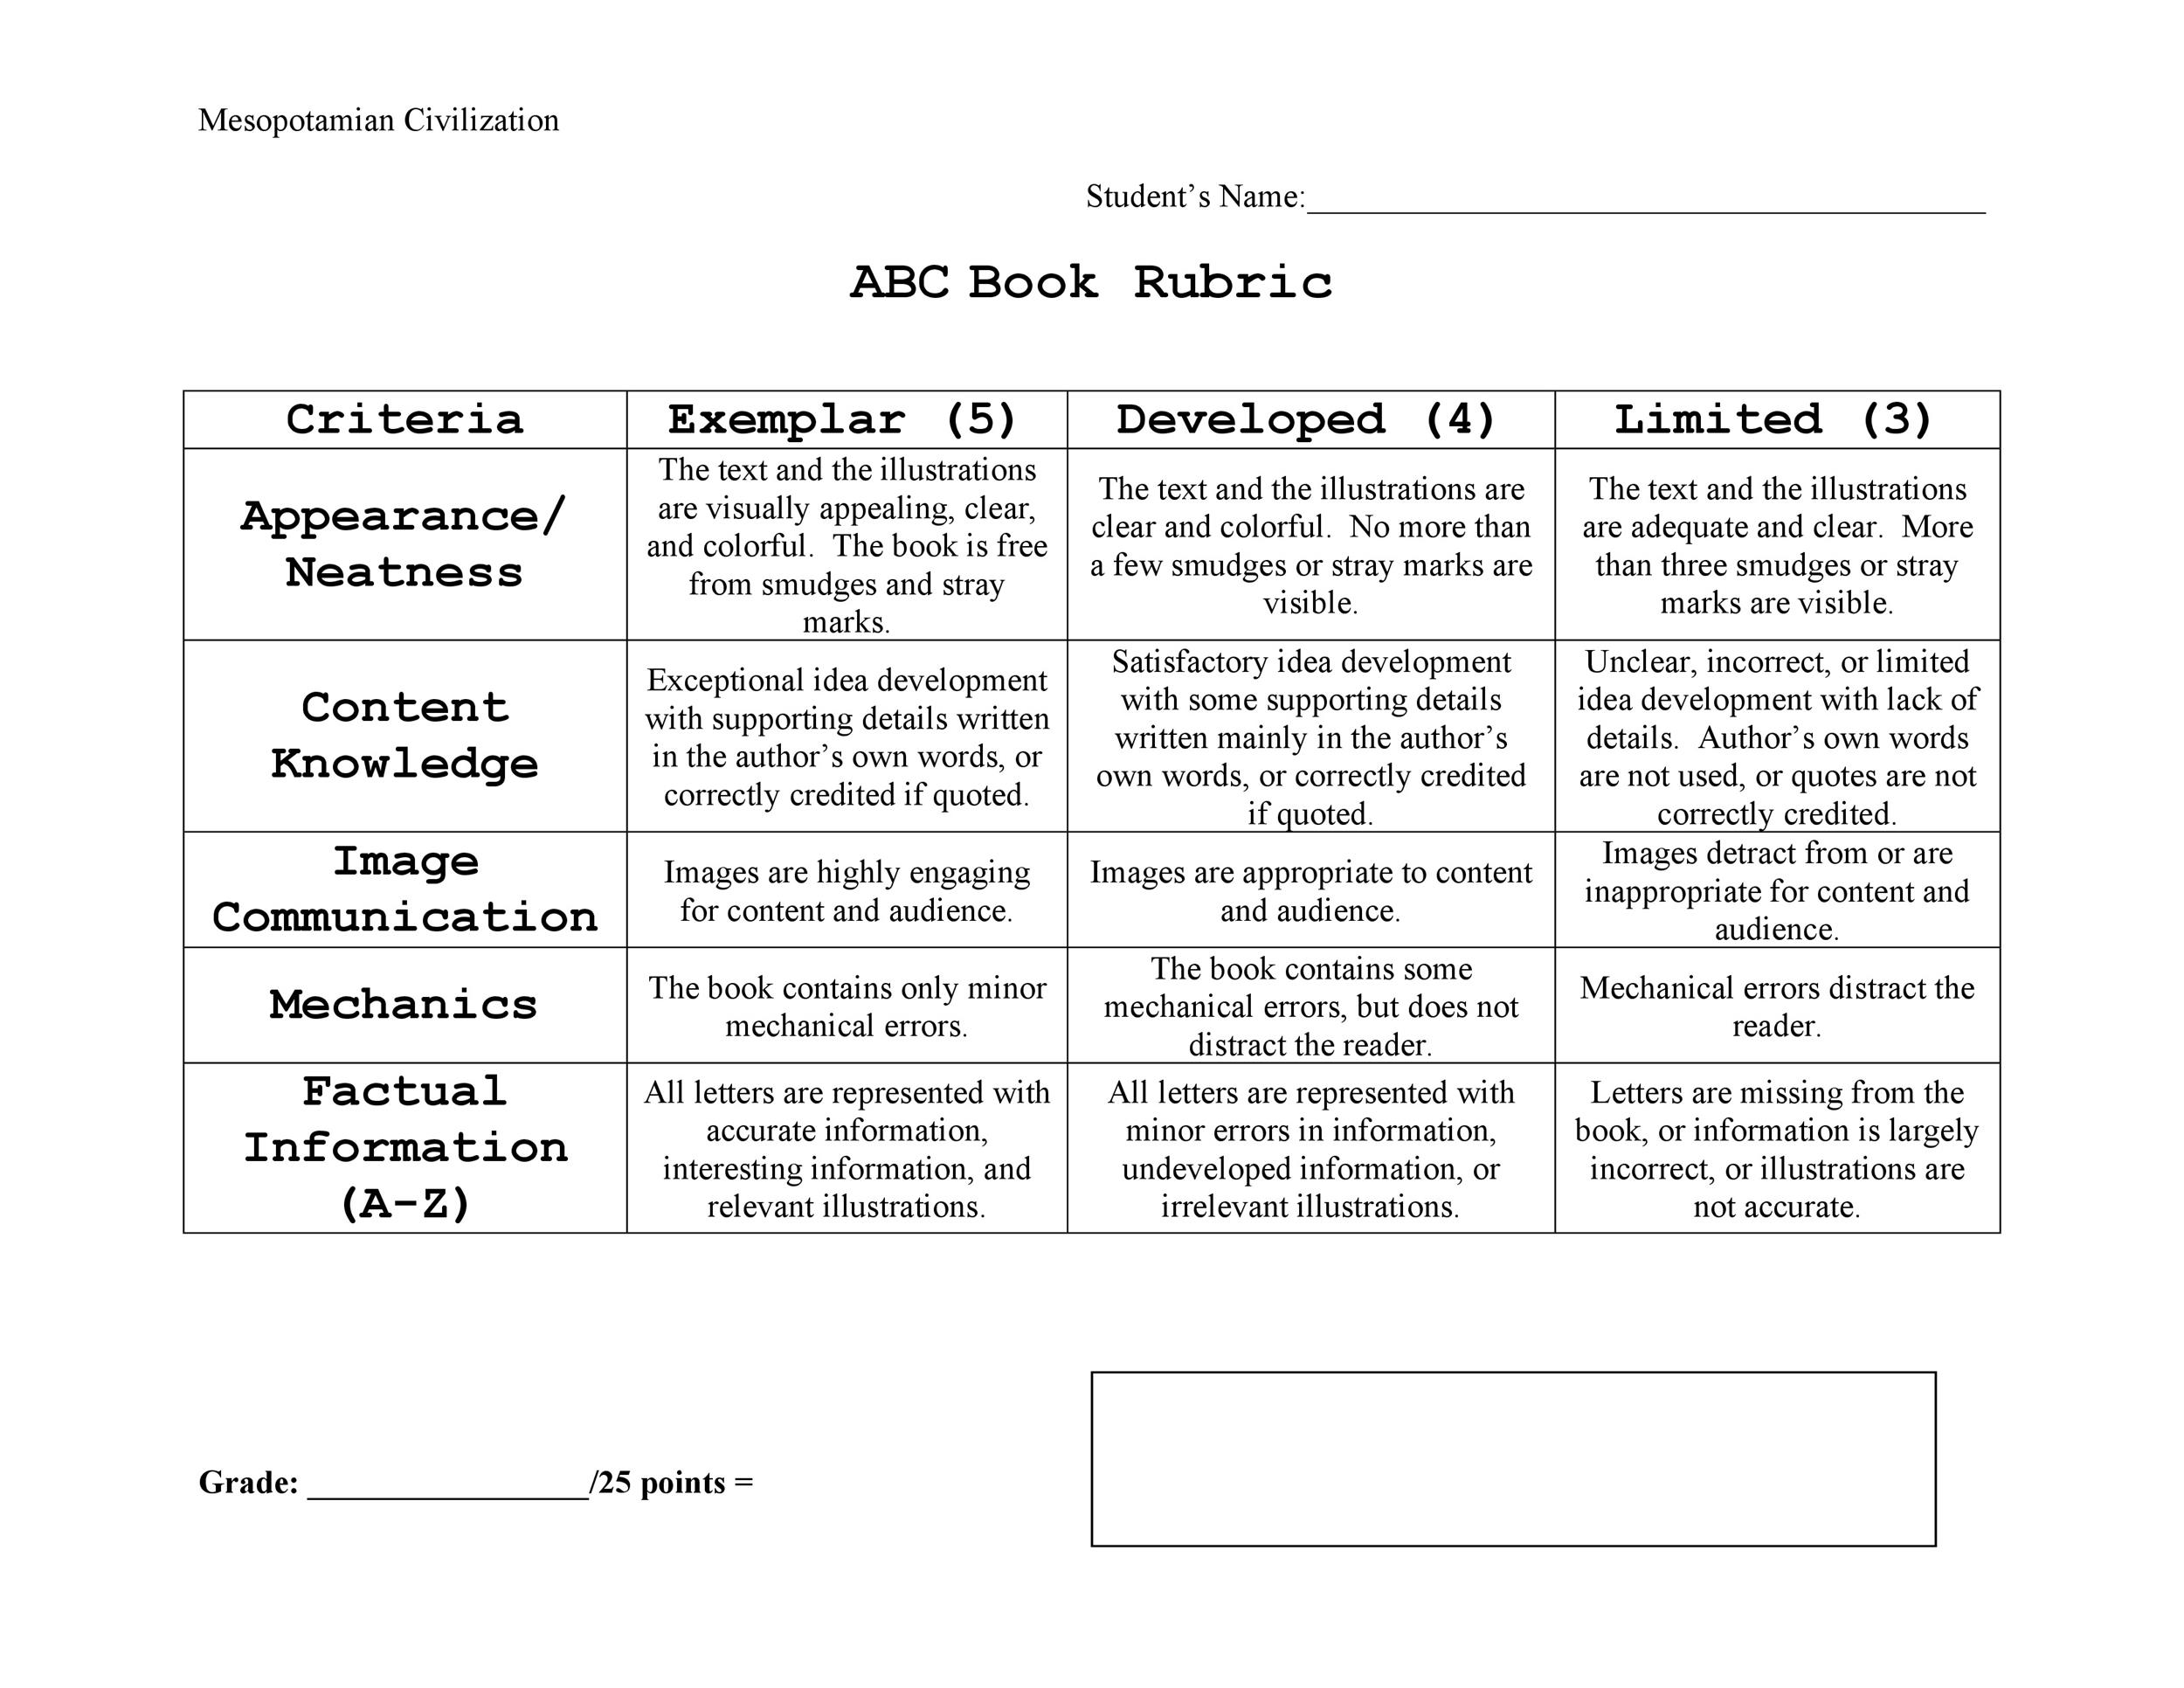 46 Editable Rubric Templates (Word Format) ᐅ Template Lab